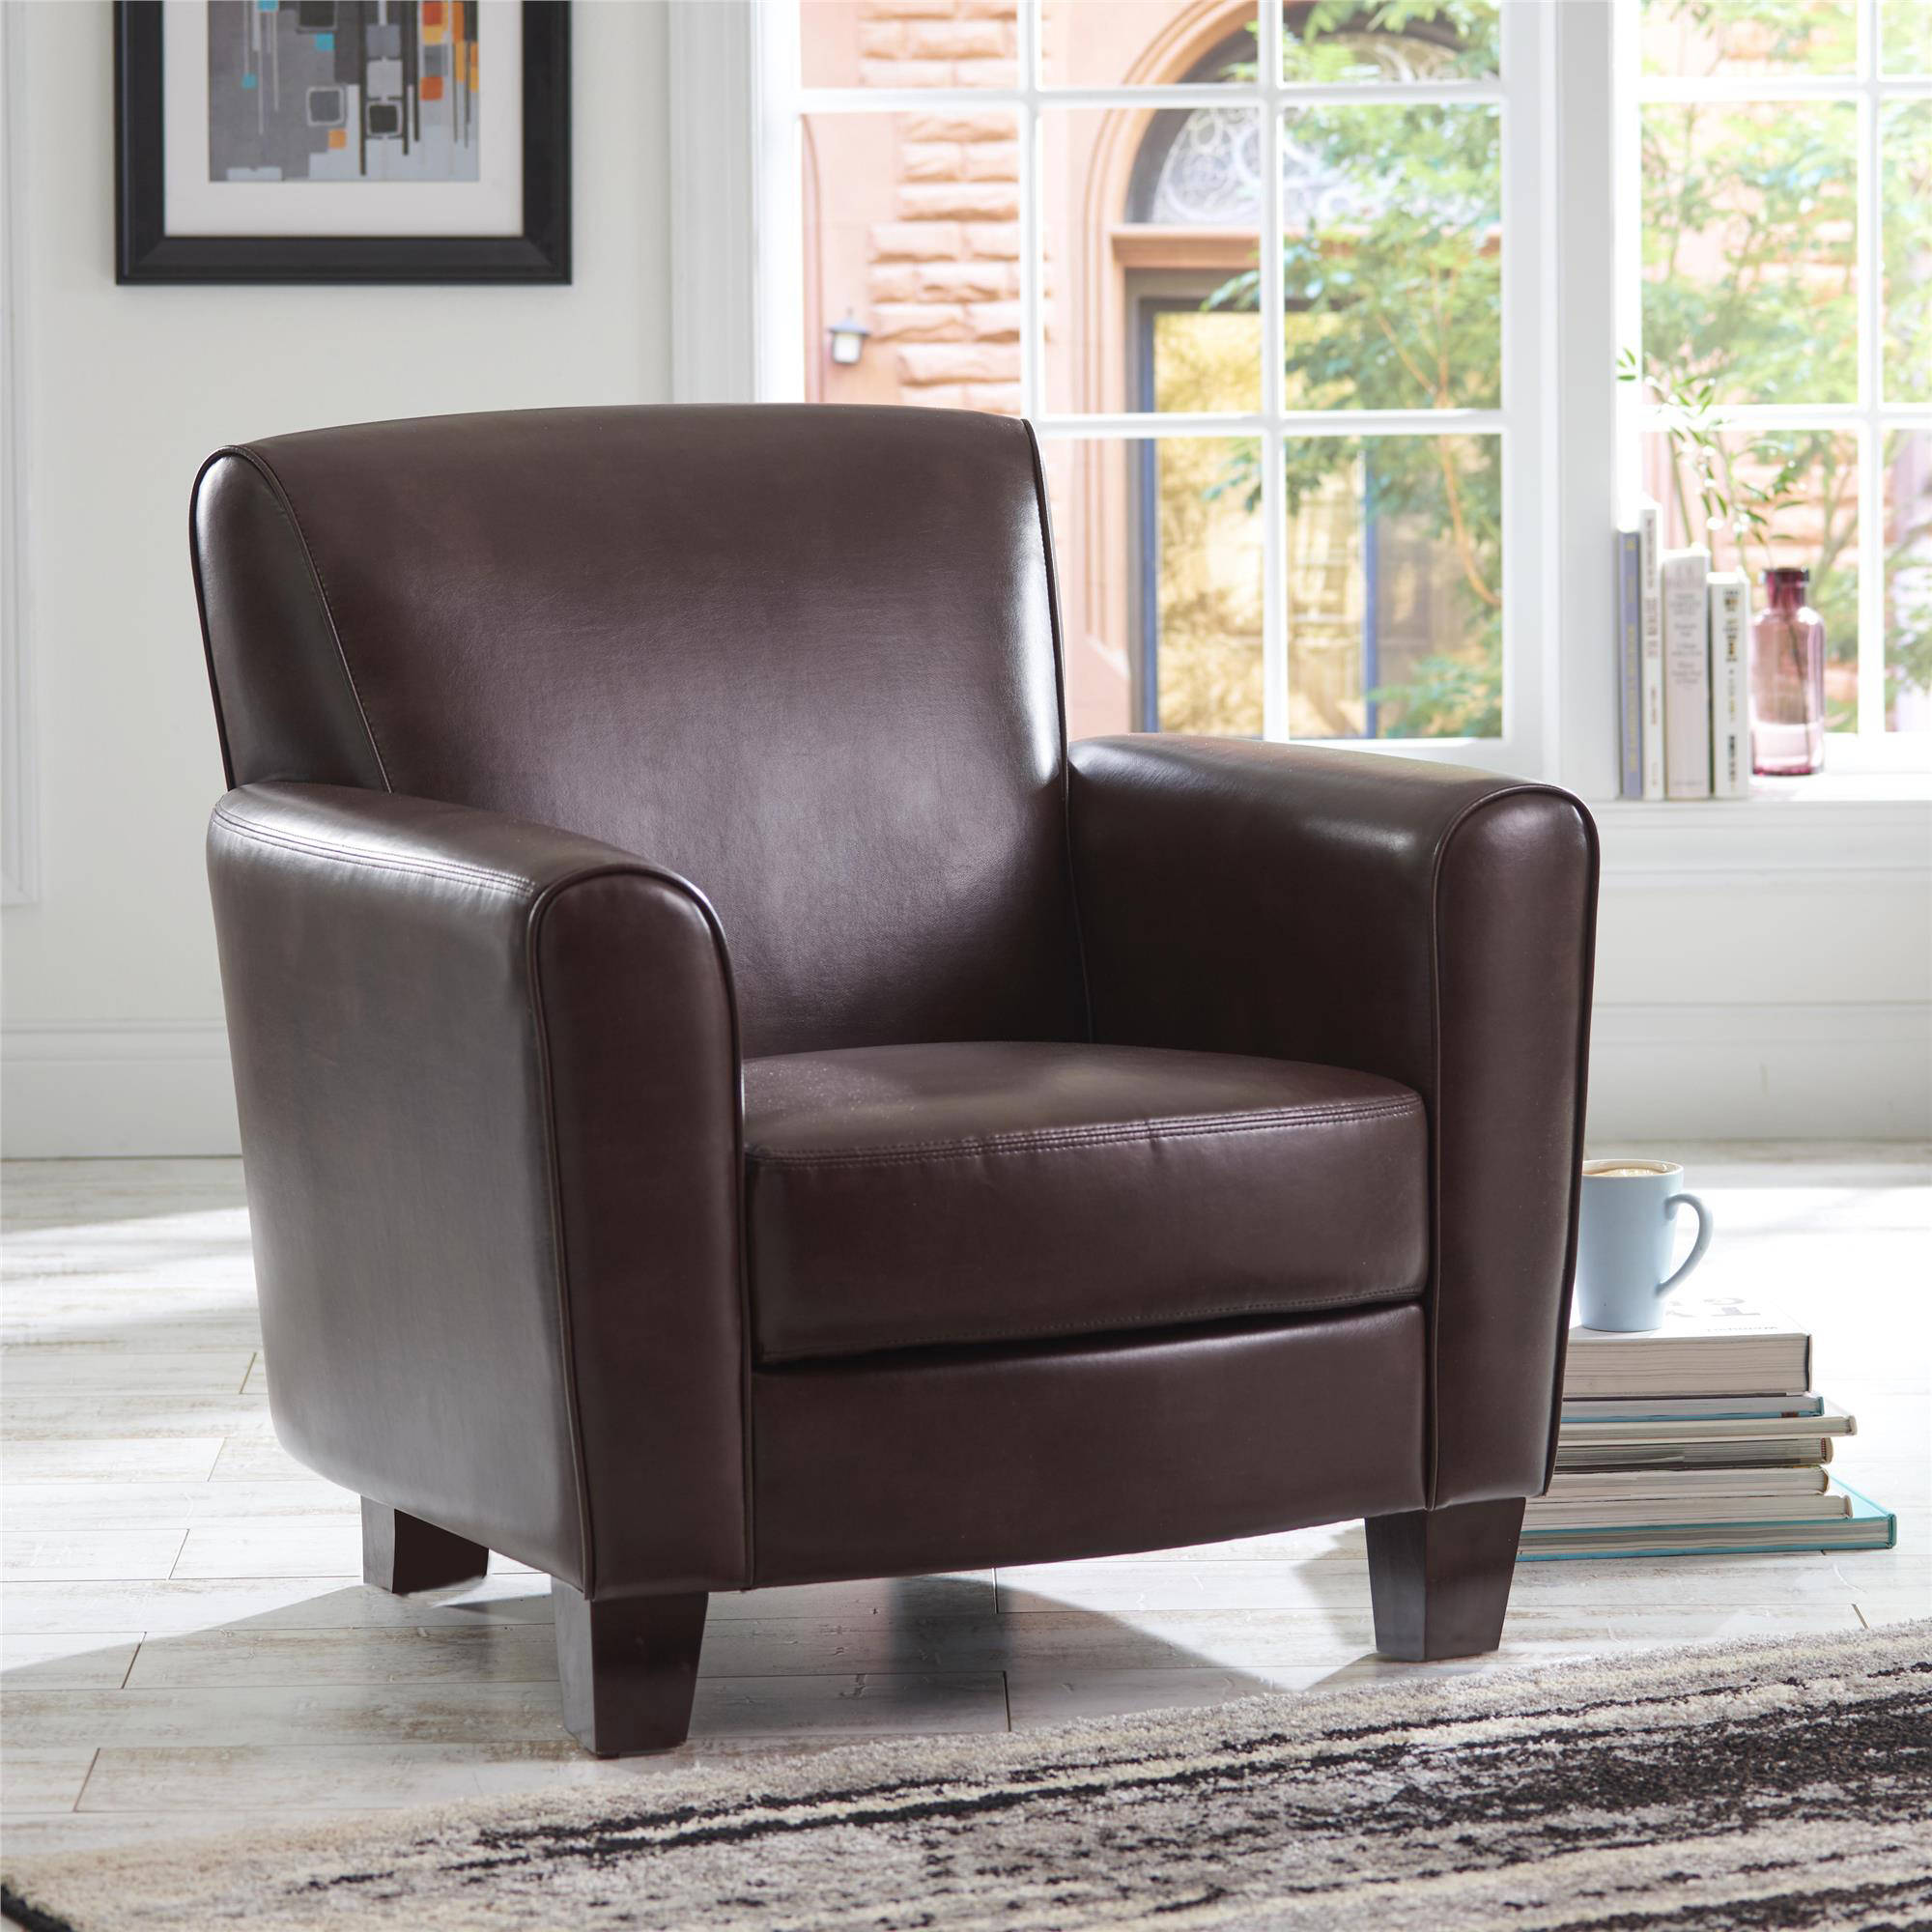 Better Homes and Gardens Ellis Club Chair Brown Walmart